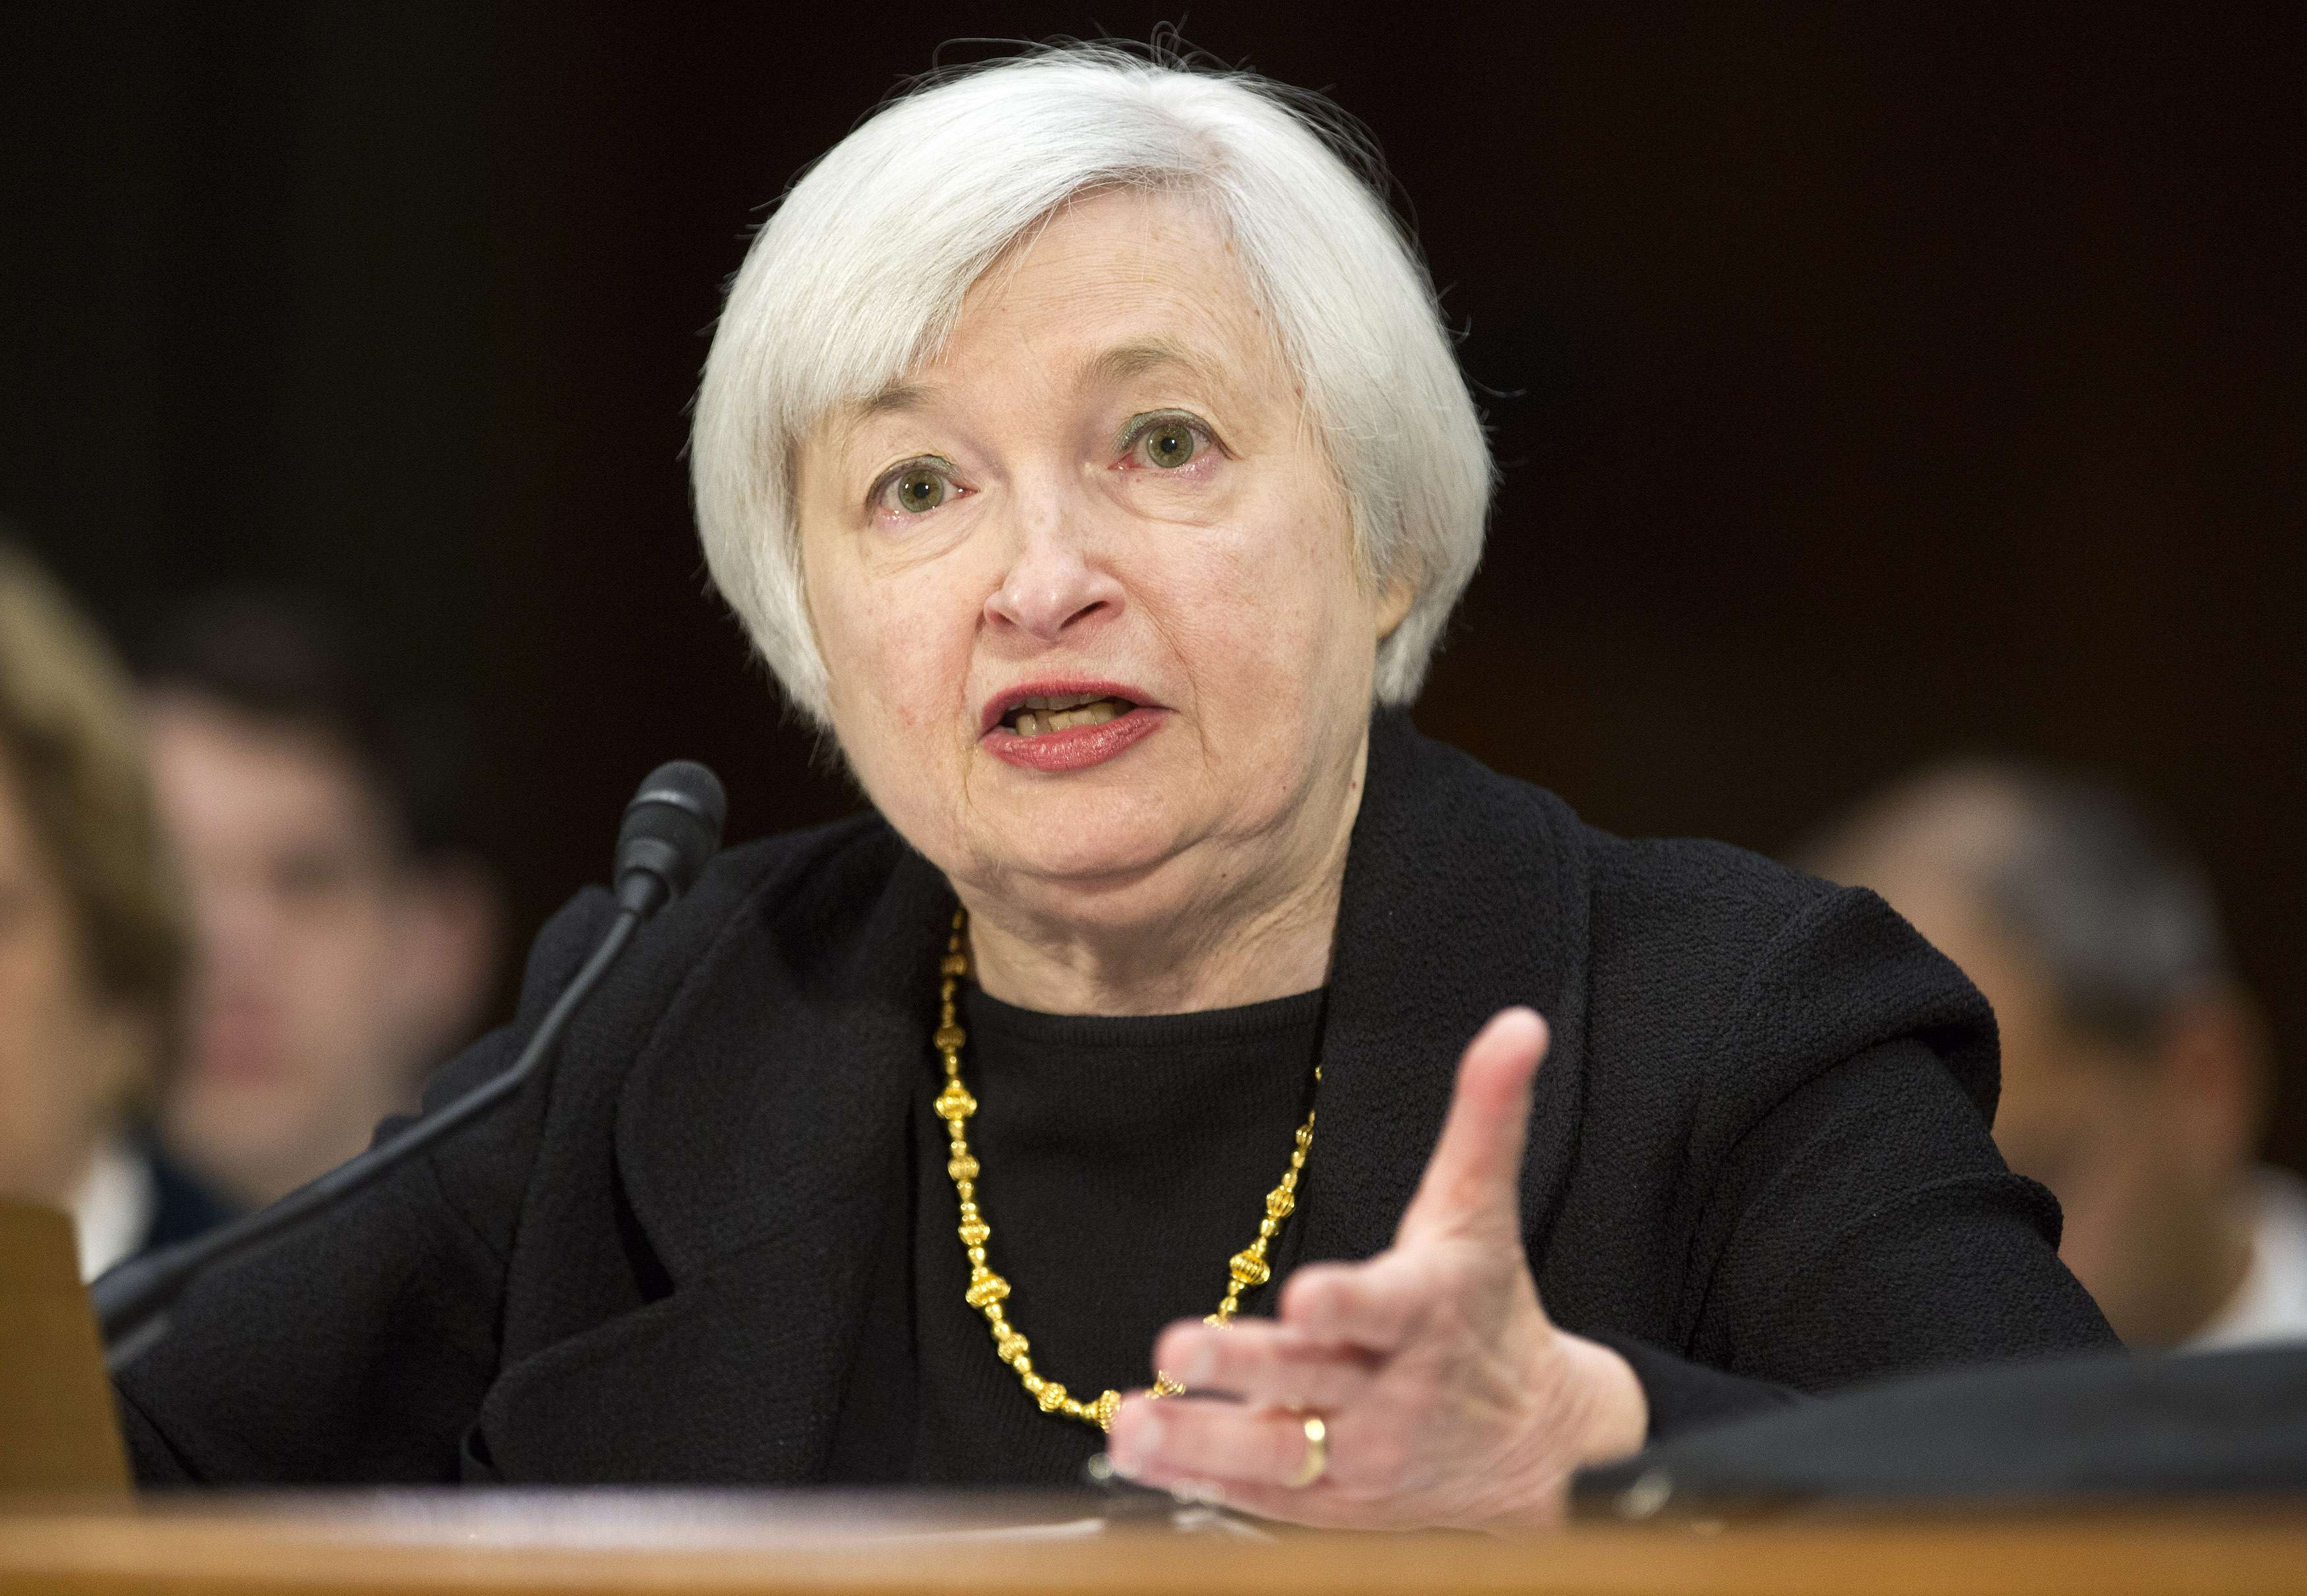 Janet Yellen, Chair of the Board of Governors Federal Reserve System